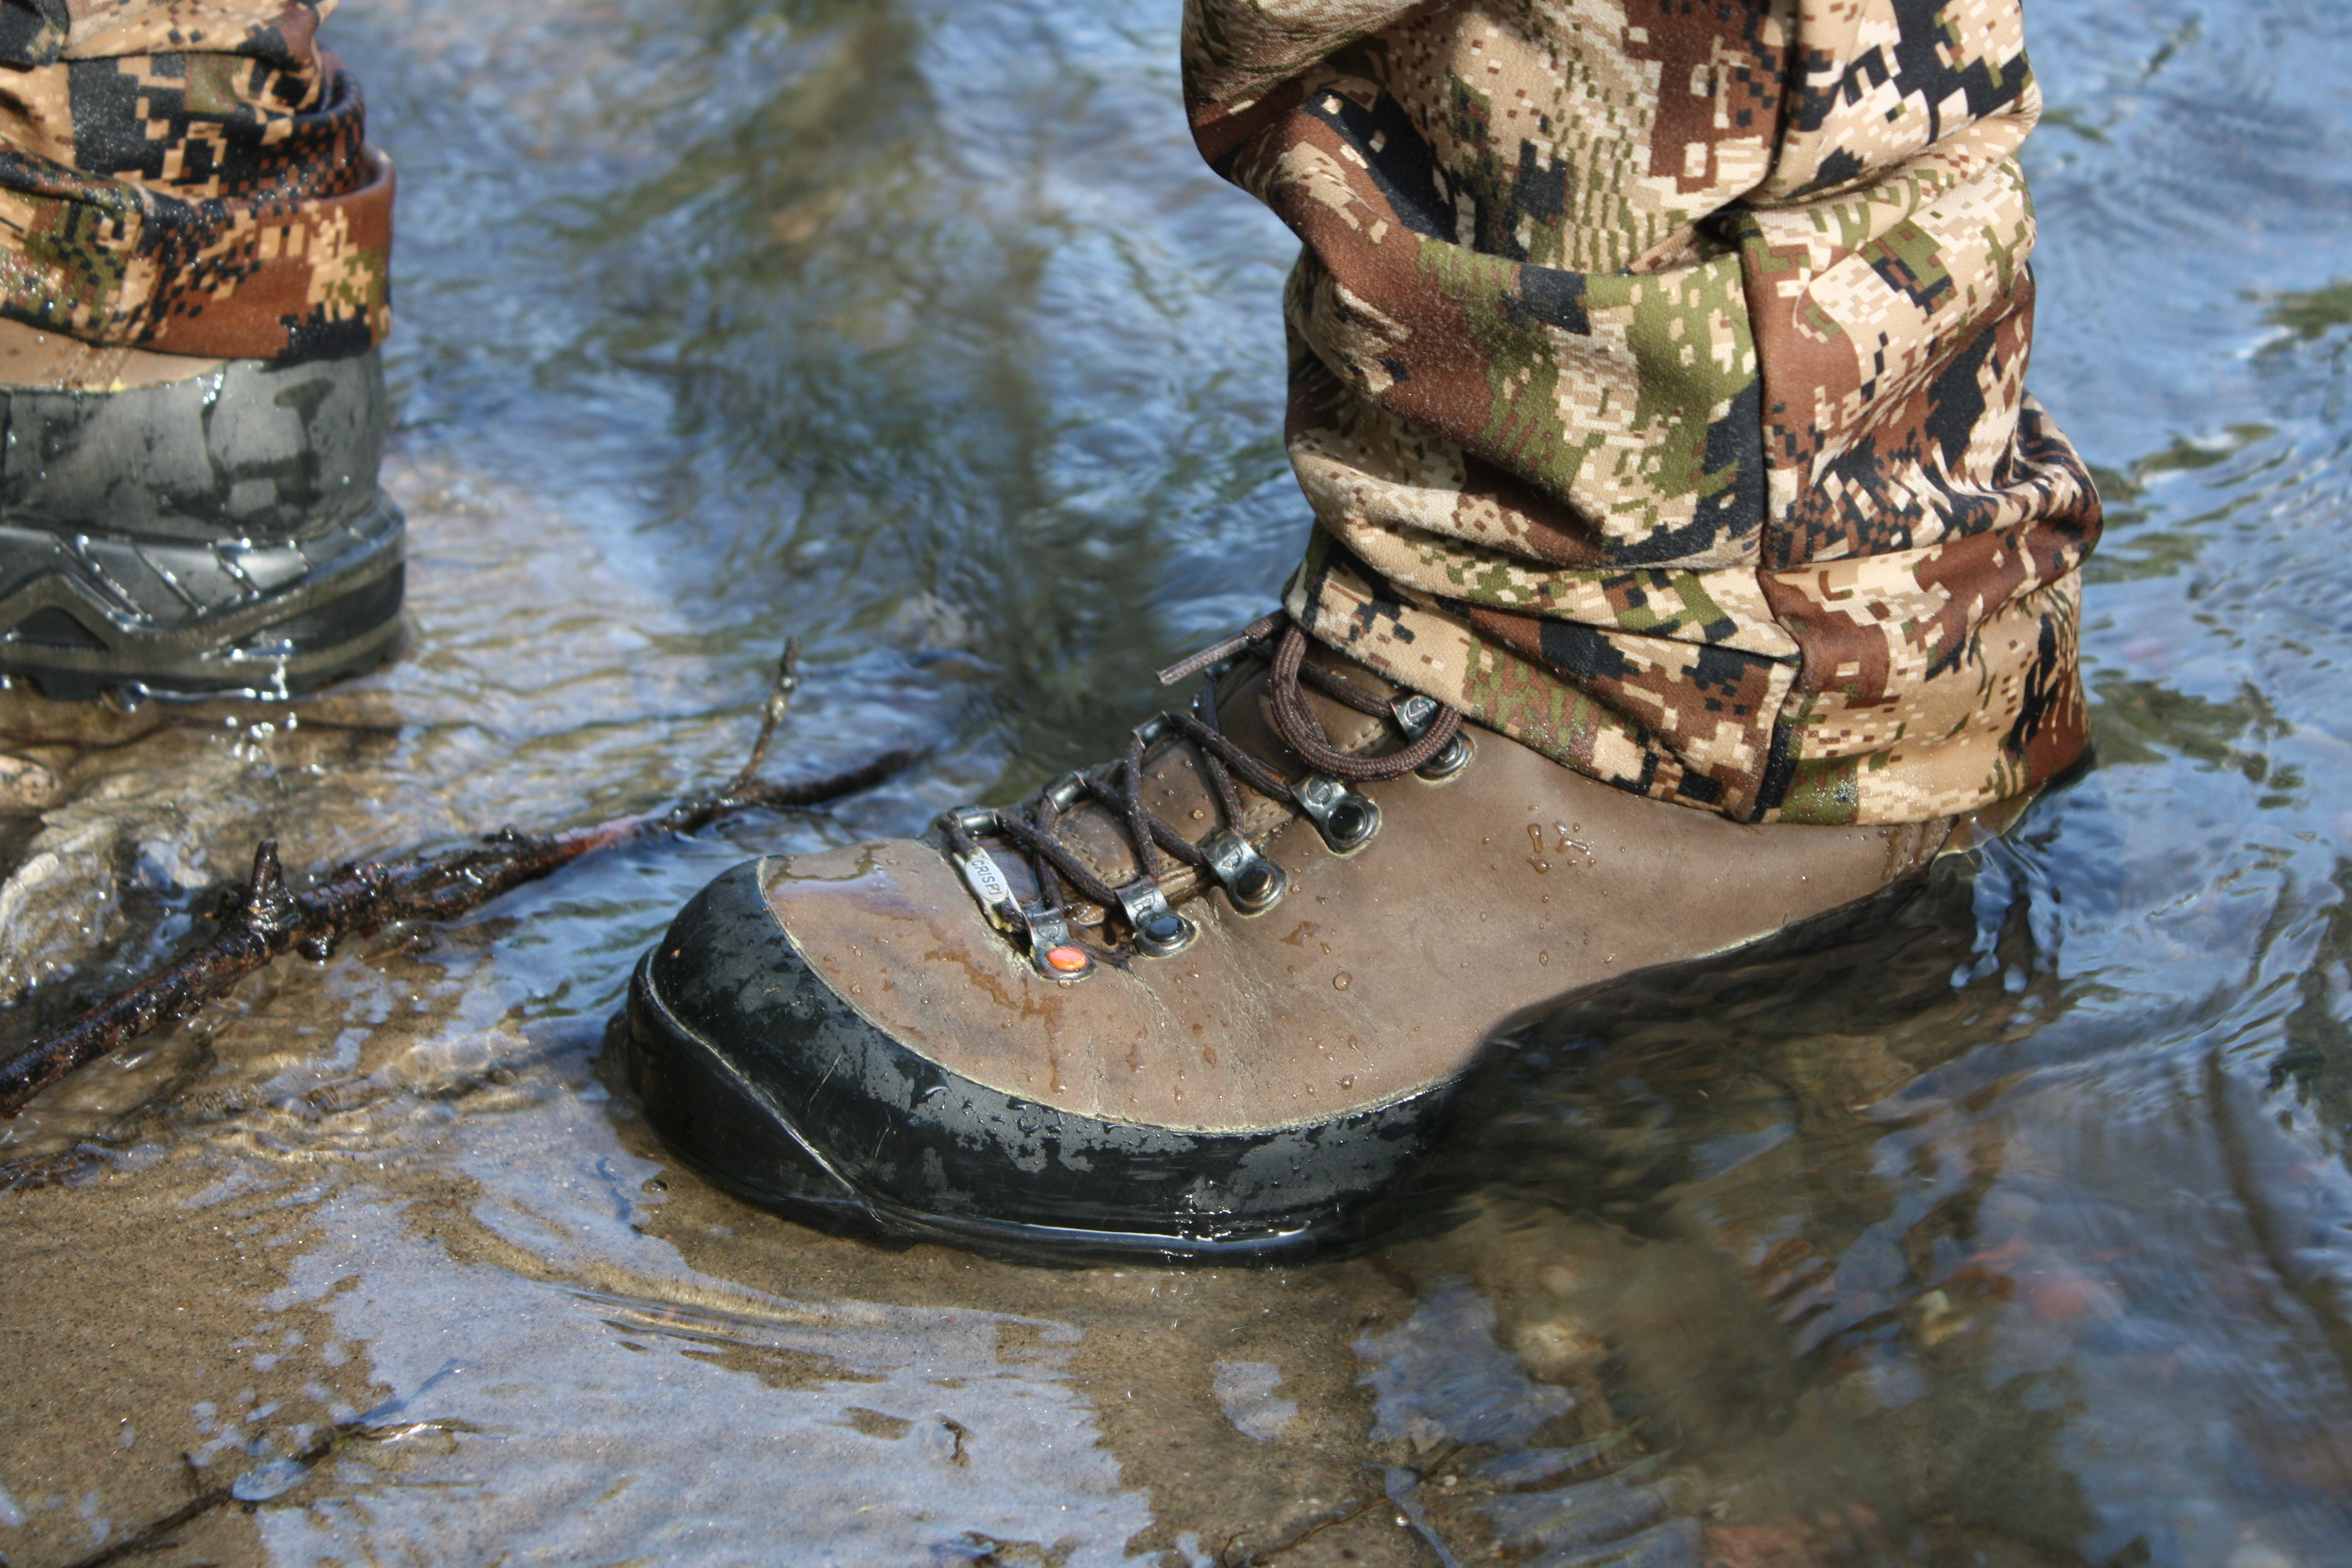 15816eff3c5 Used and Abused: Crispi Nevada GTX Hunting Boot Review | GearJunkie